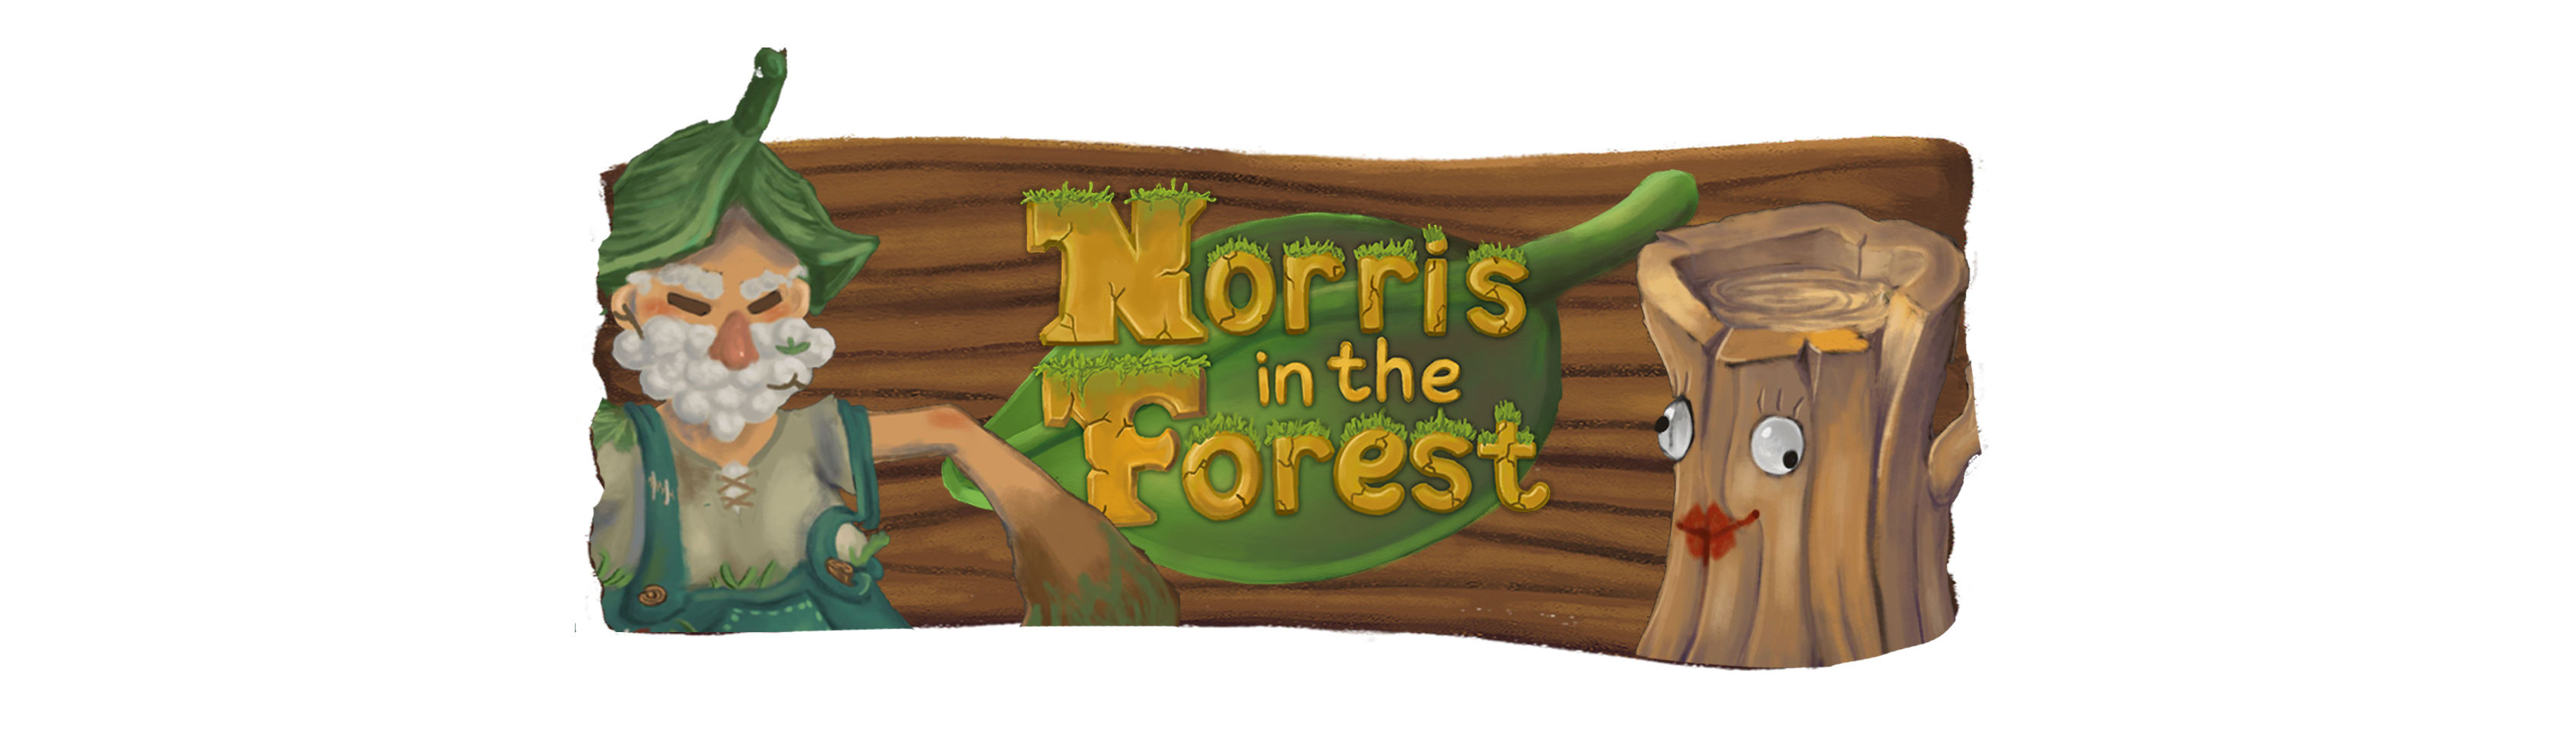 Norris in the Forest